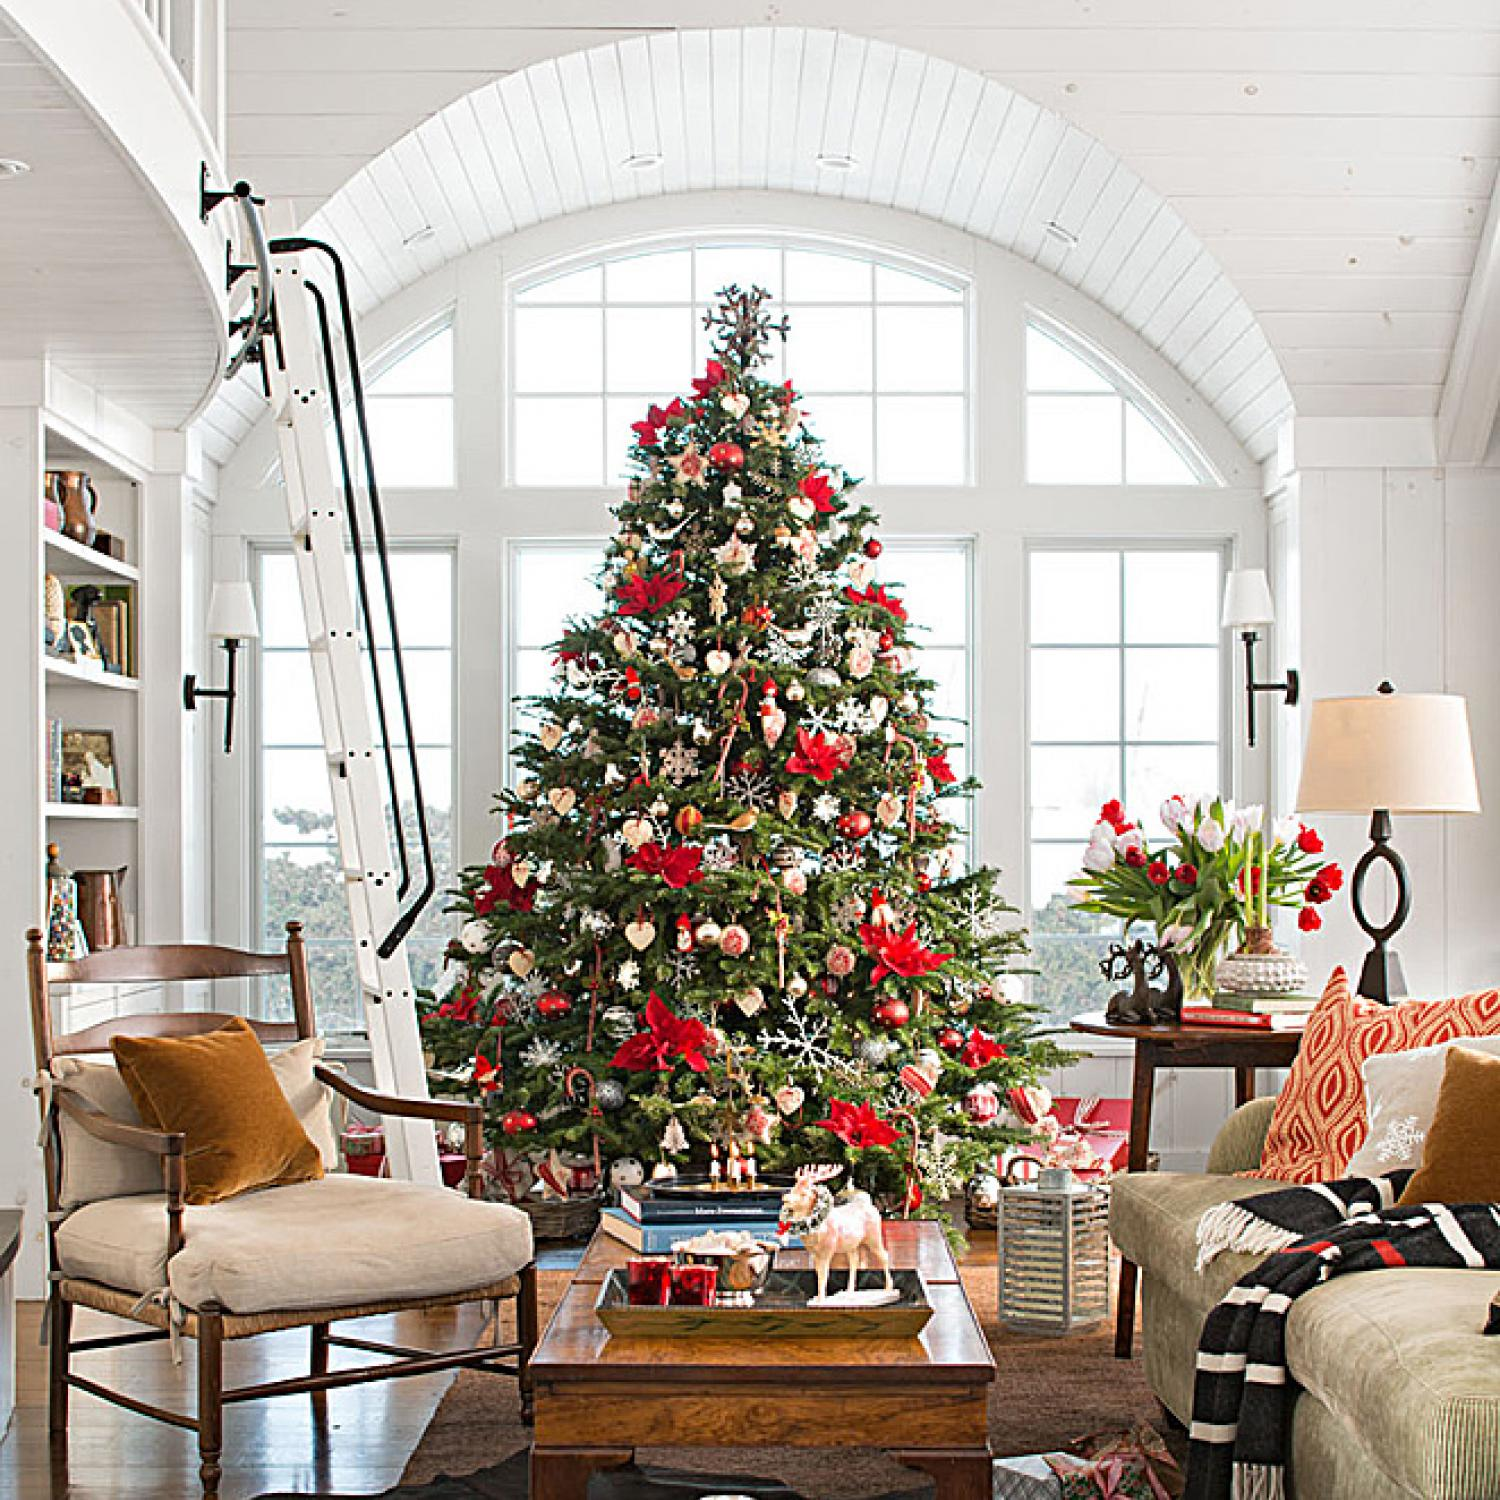 Snowy vermont home ready for christmas traditional